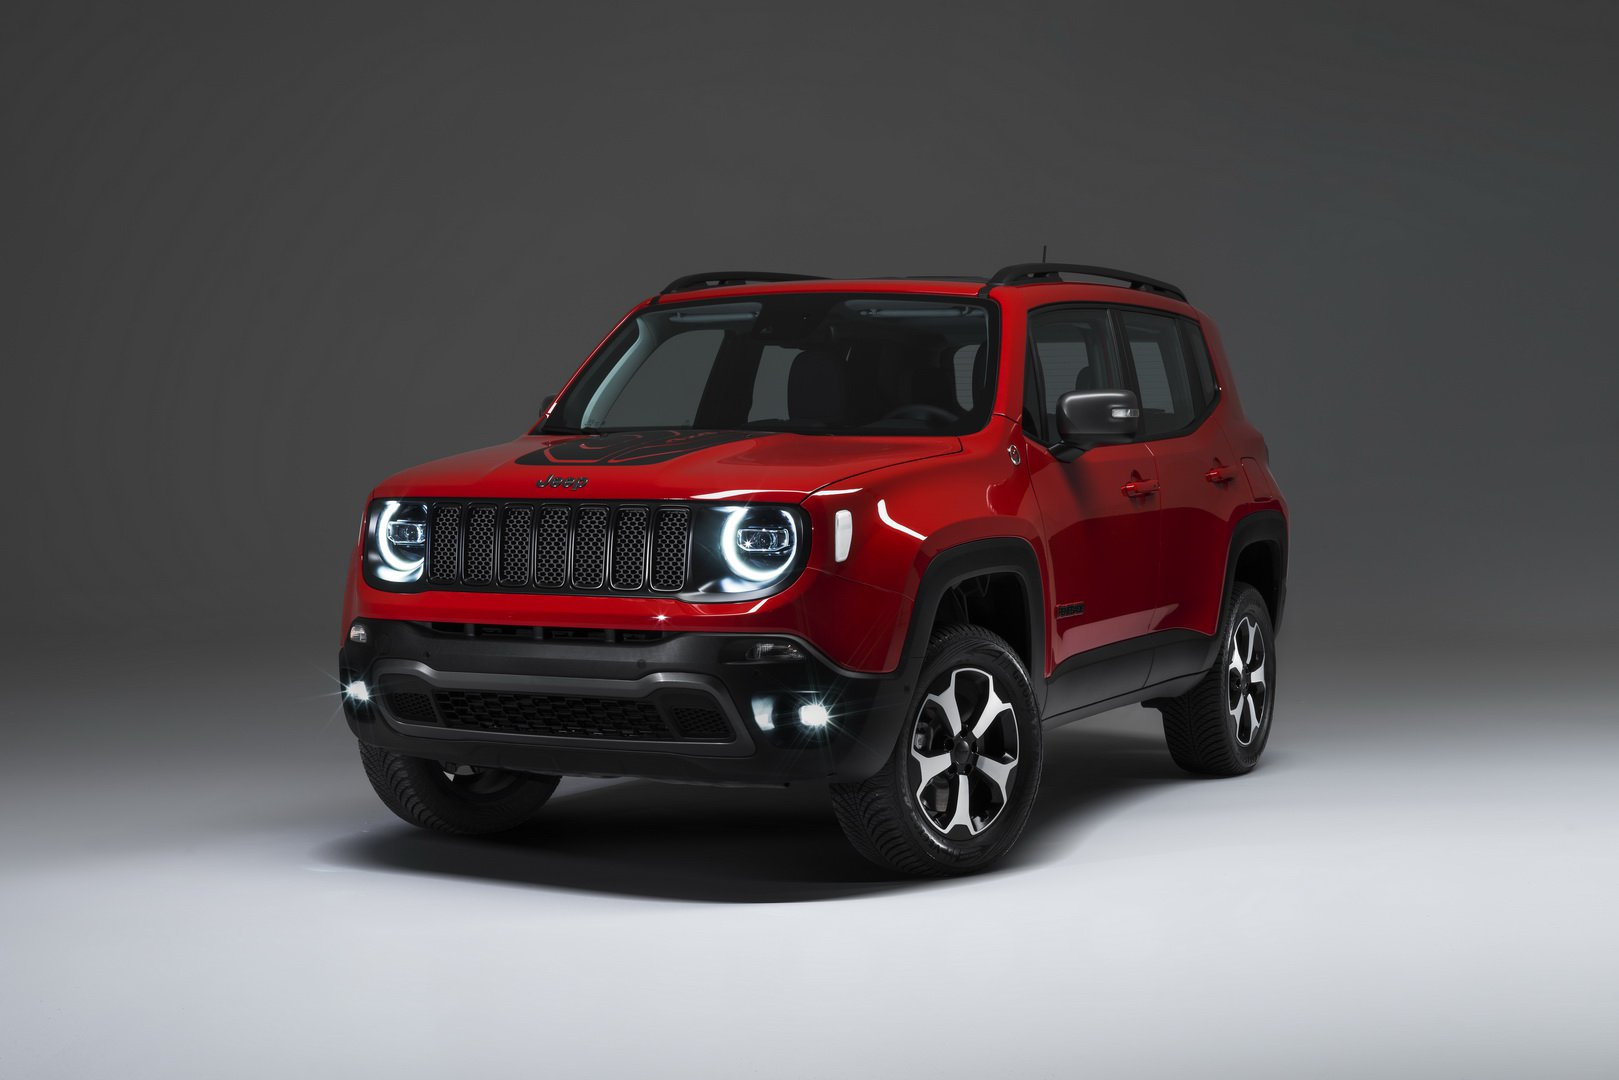 2019-jeep-renegade-phev-1.jpg